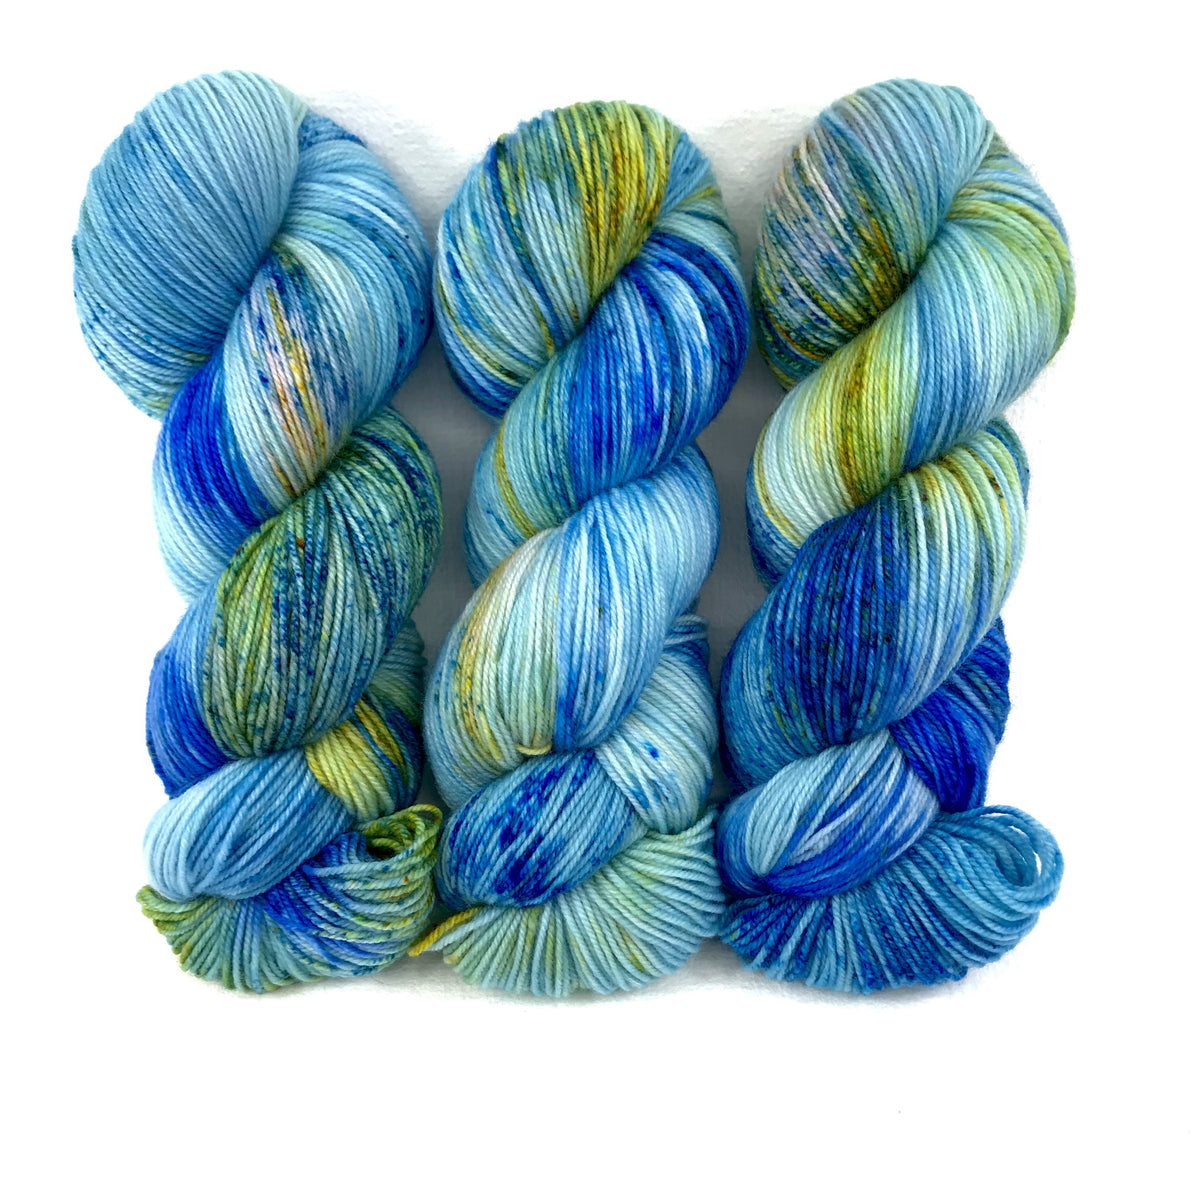 Blue Poppy in Worsted Weight